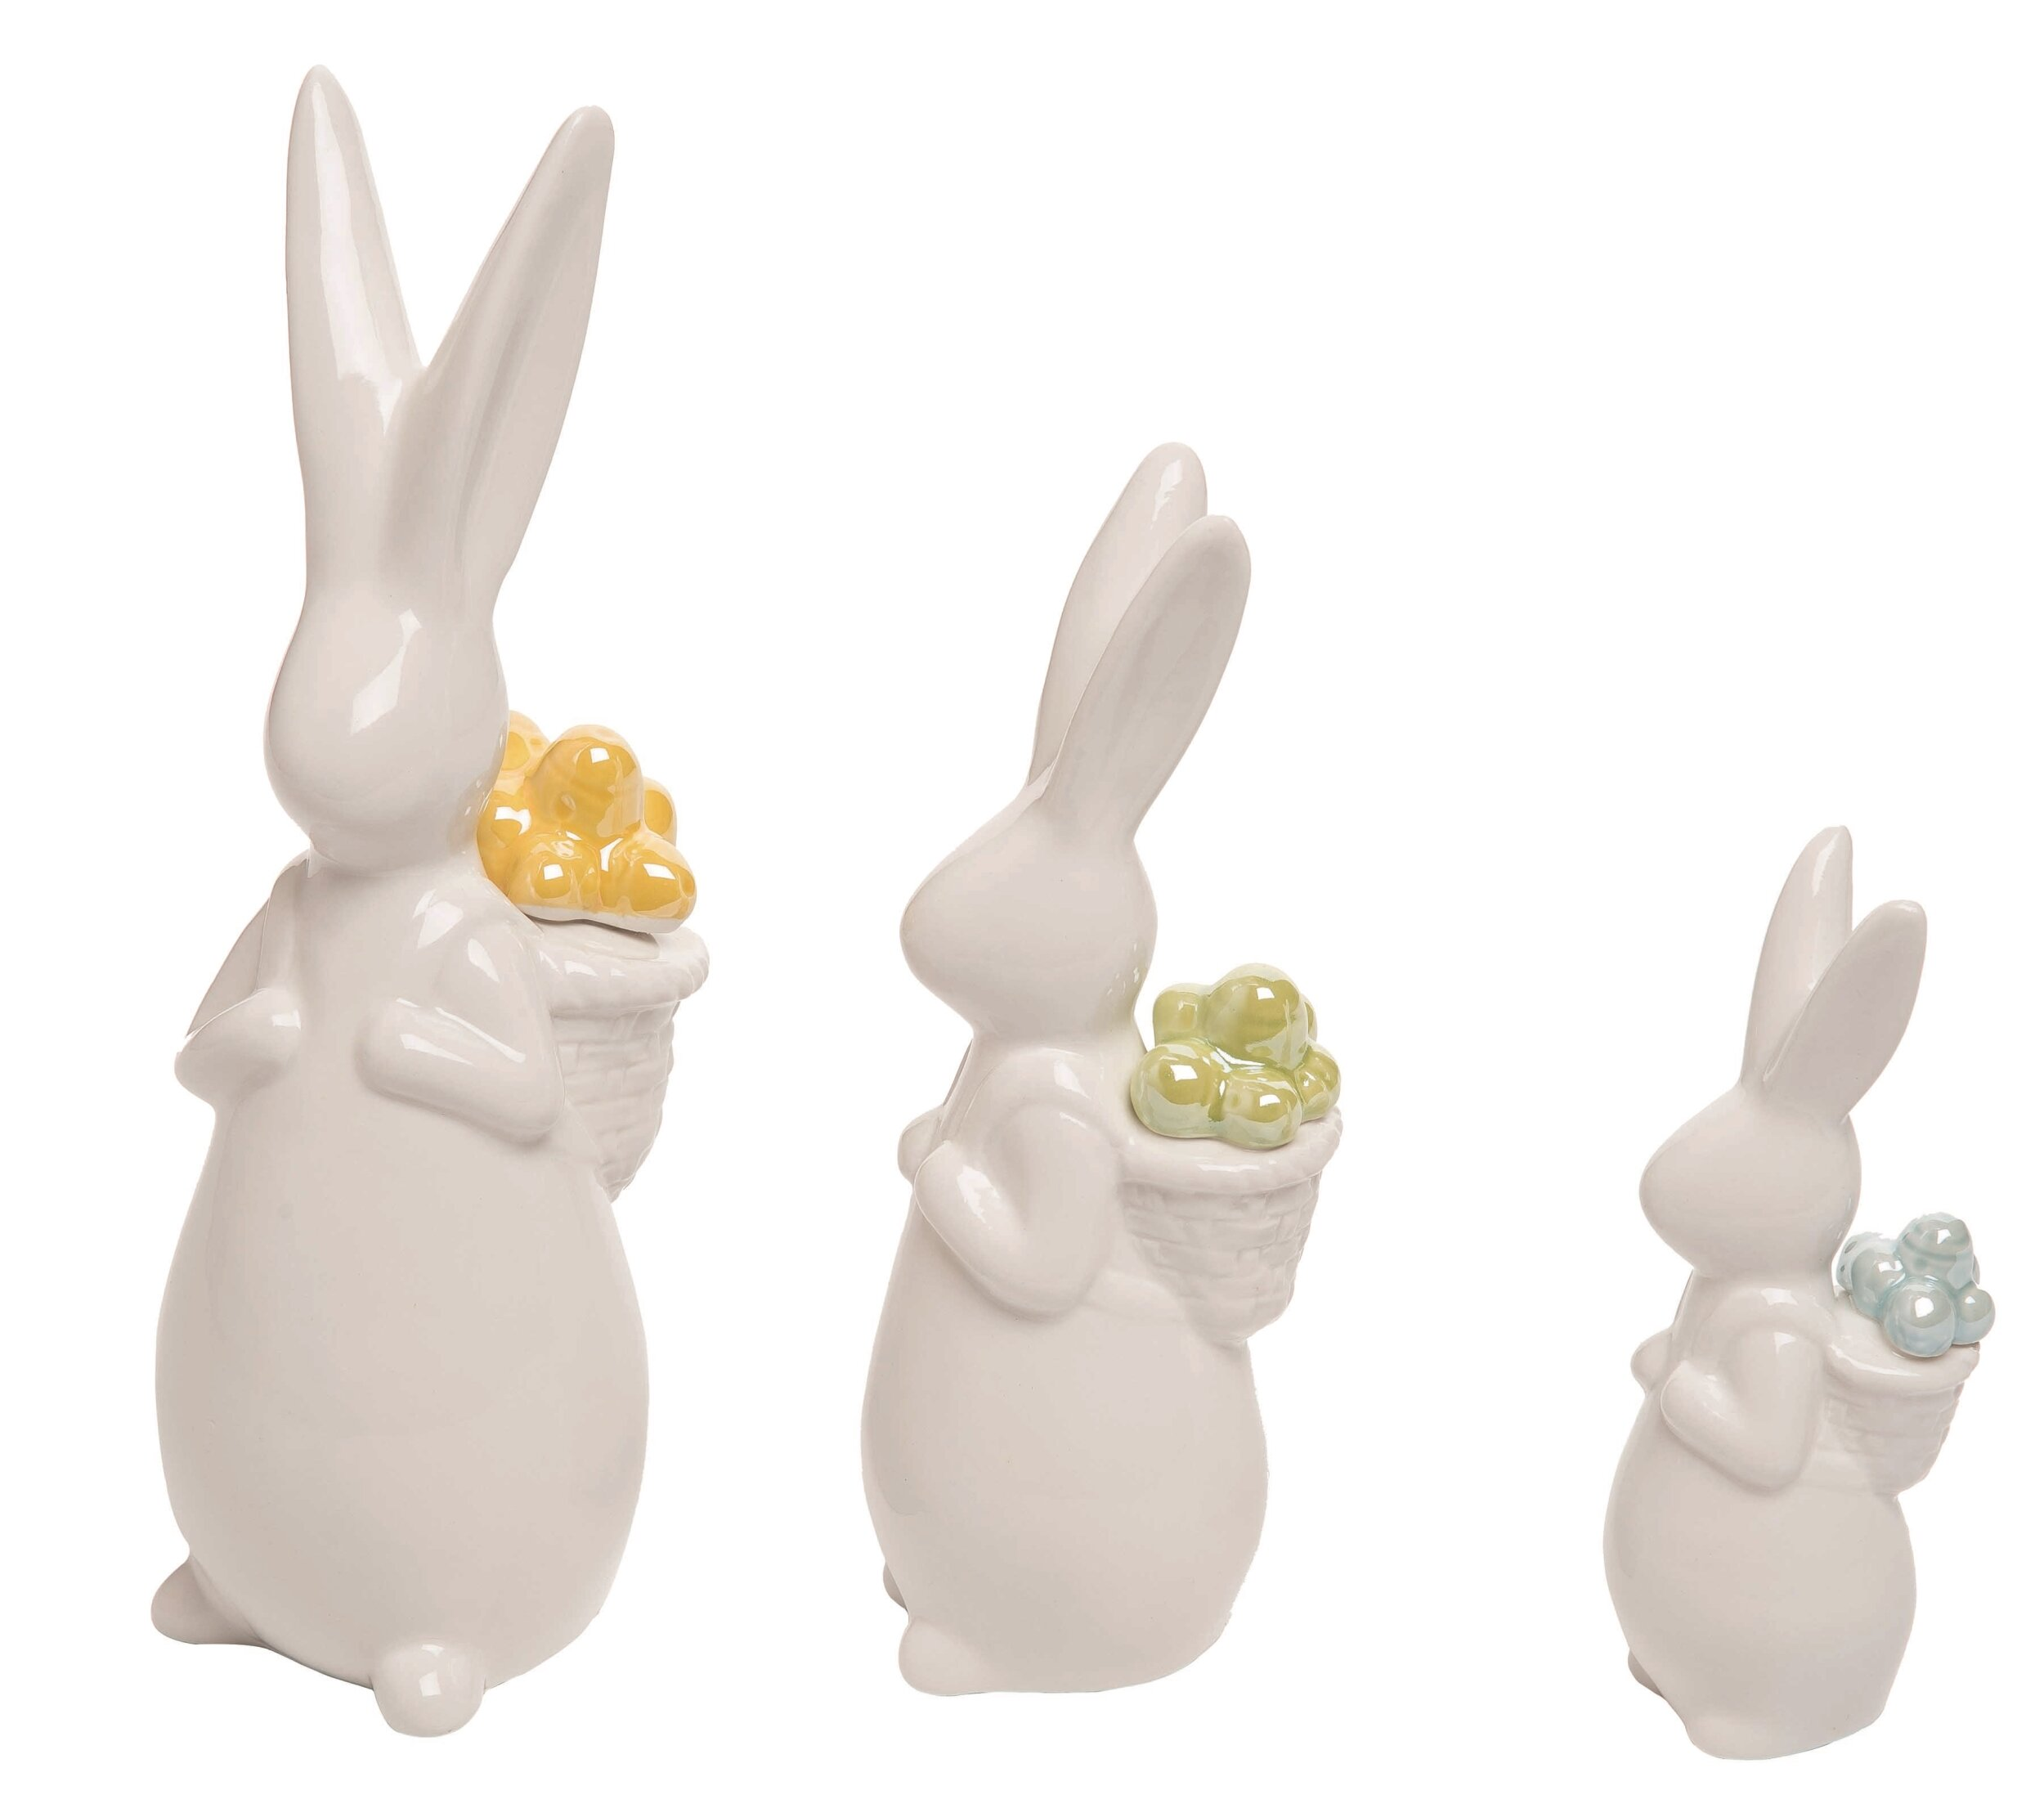 The Holiday Aisle 3 Piece Ceramic Easter Bunny Family With Backpacks Figurines Set Wayfair